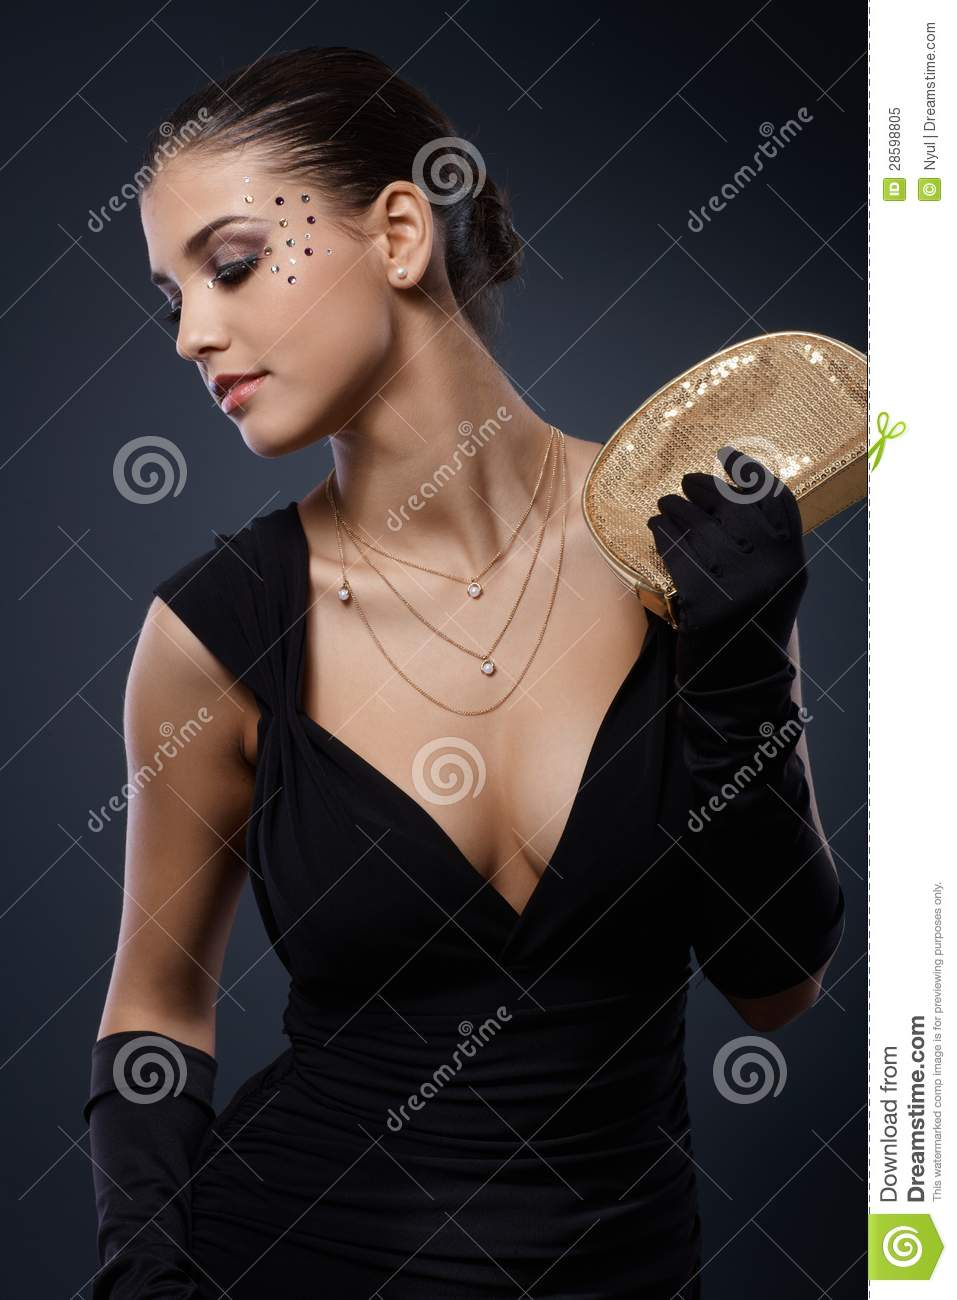 Beauty Dressed For Elegant Party Royalty Free Stock Photo - Image 28598805